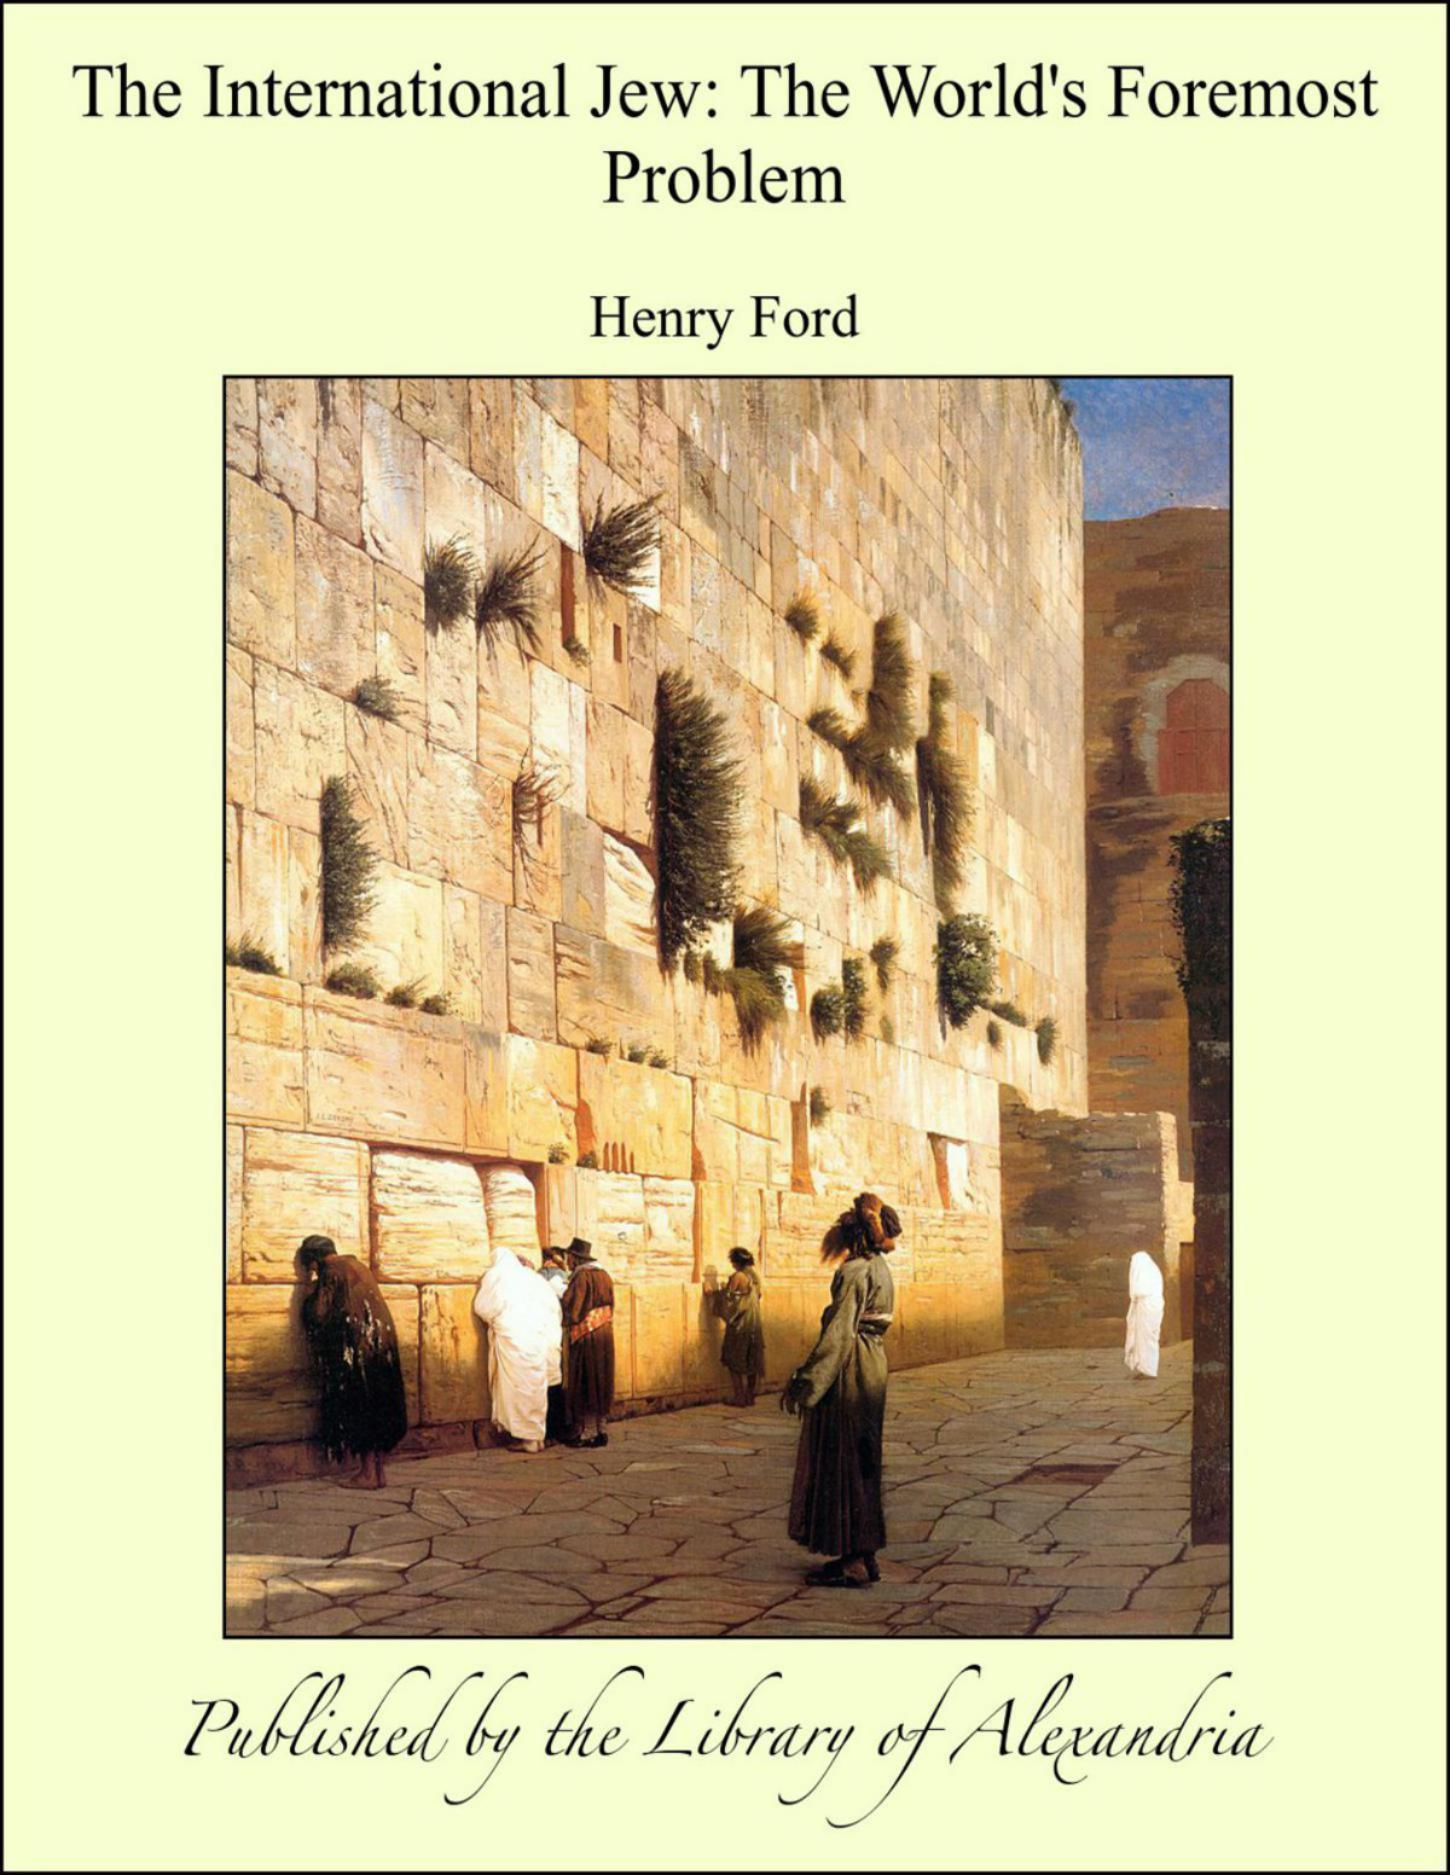 Henry Ford - The International Jew: The World's Foremost Problem